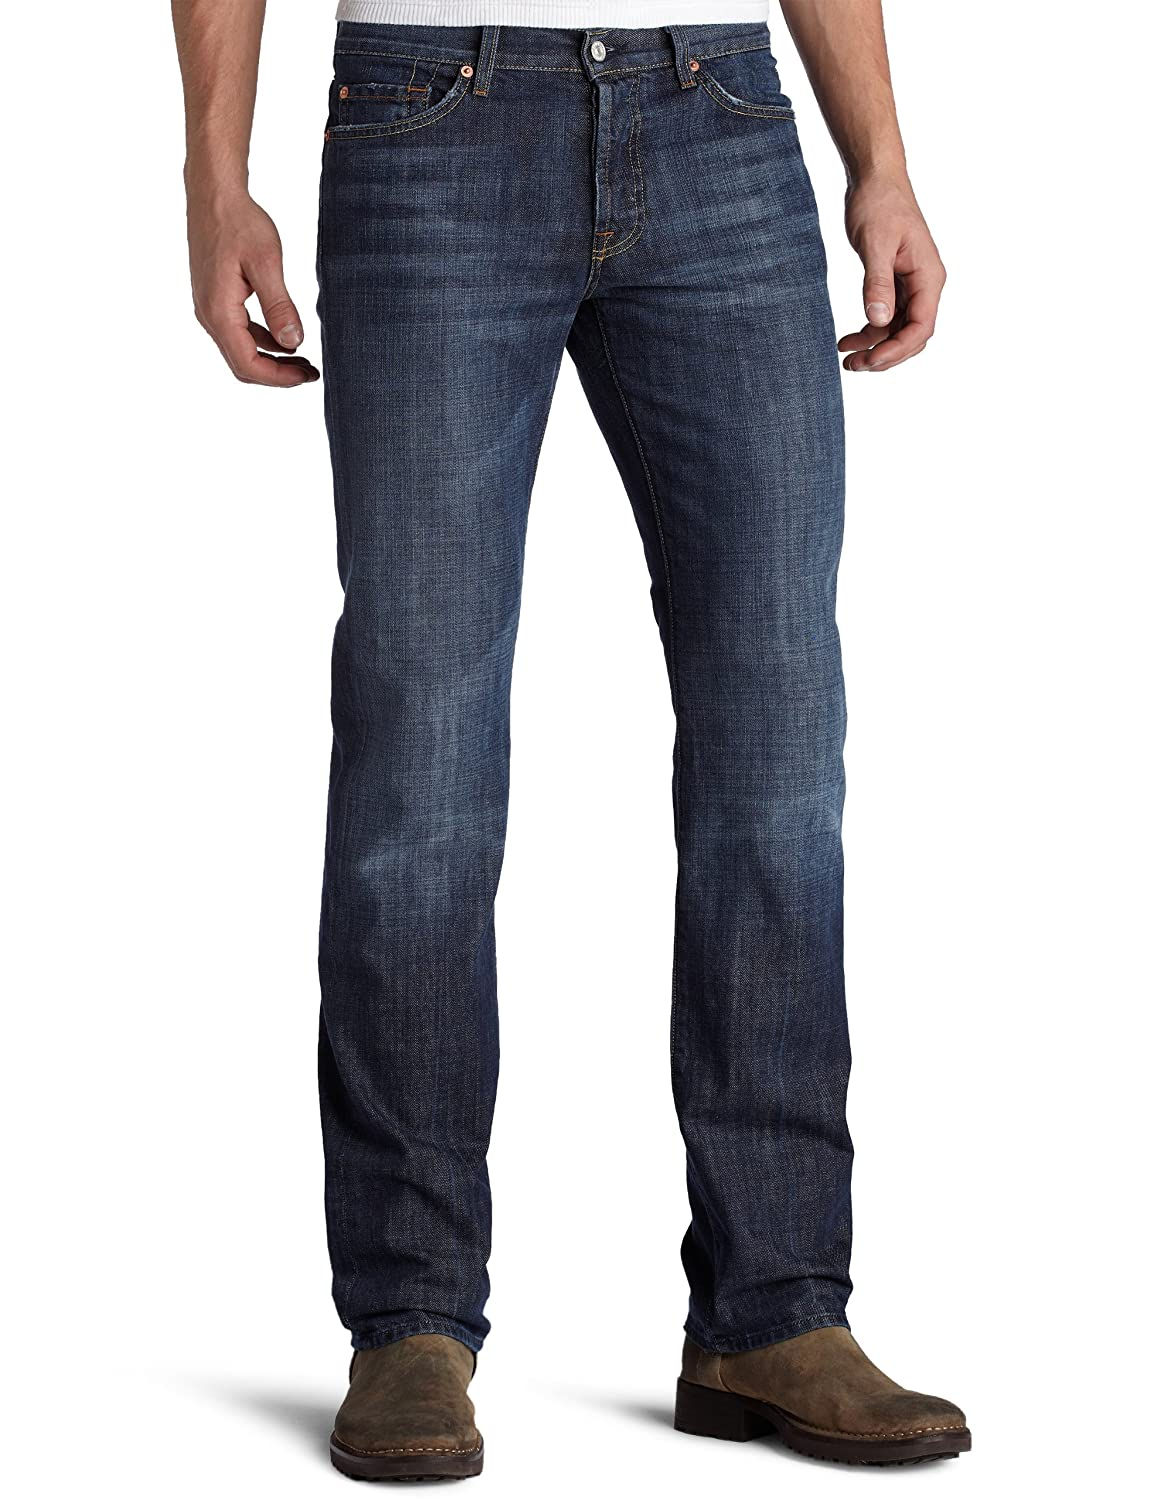 Amazon.com: 7 For All Mankind Men's Standard Straight-Leg Jean in ...